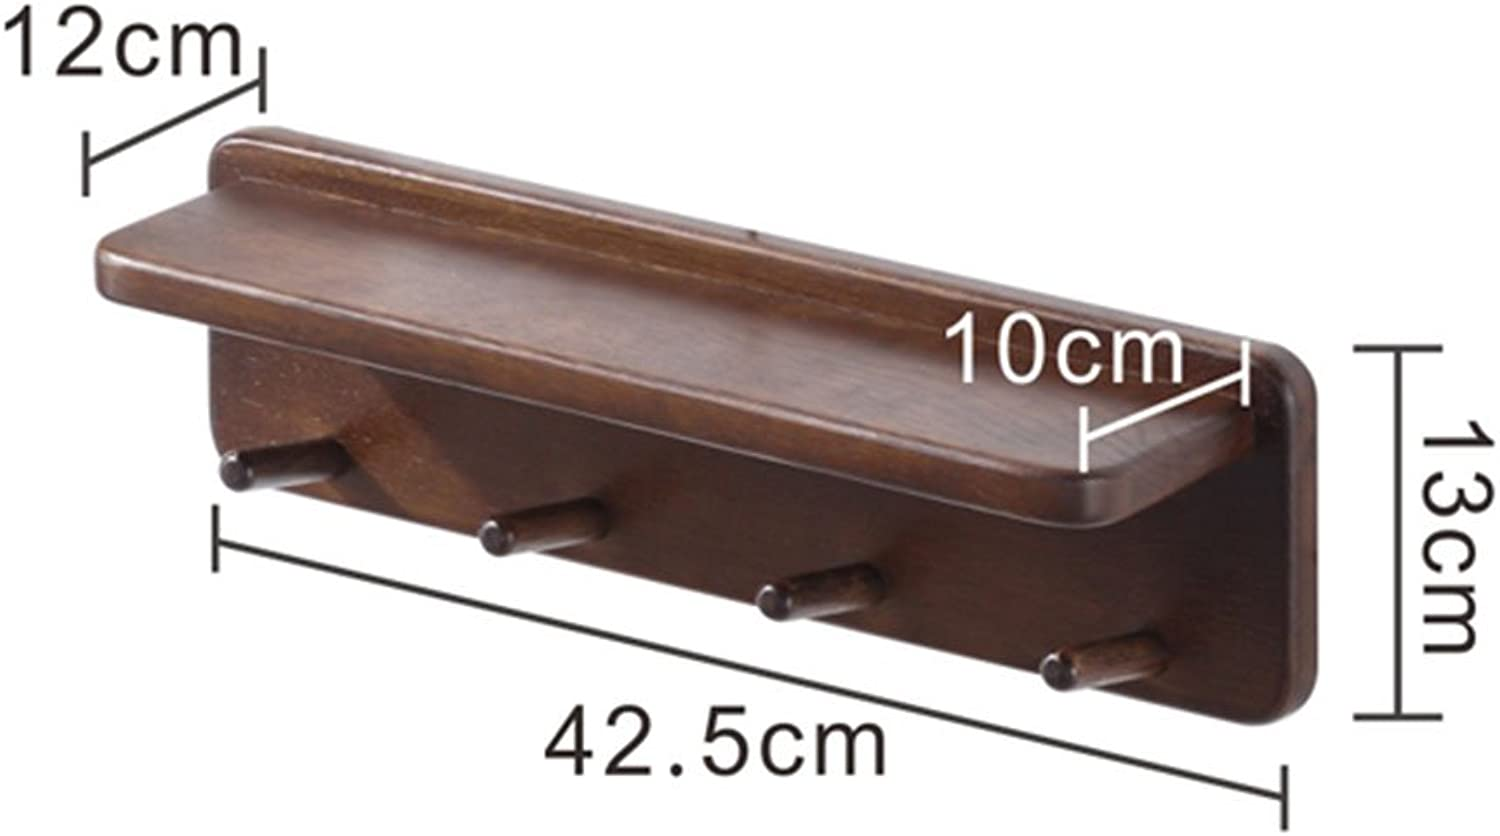 LIANGJUN Wall Coat Rack Clothes Hat Hanger Holder Hooks Simple Solid Wood, 2 colors, 2 Sizes Available Jacket Scarf Porch (color   Brown, Size   42.5x13x12CM)